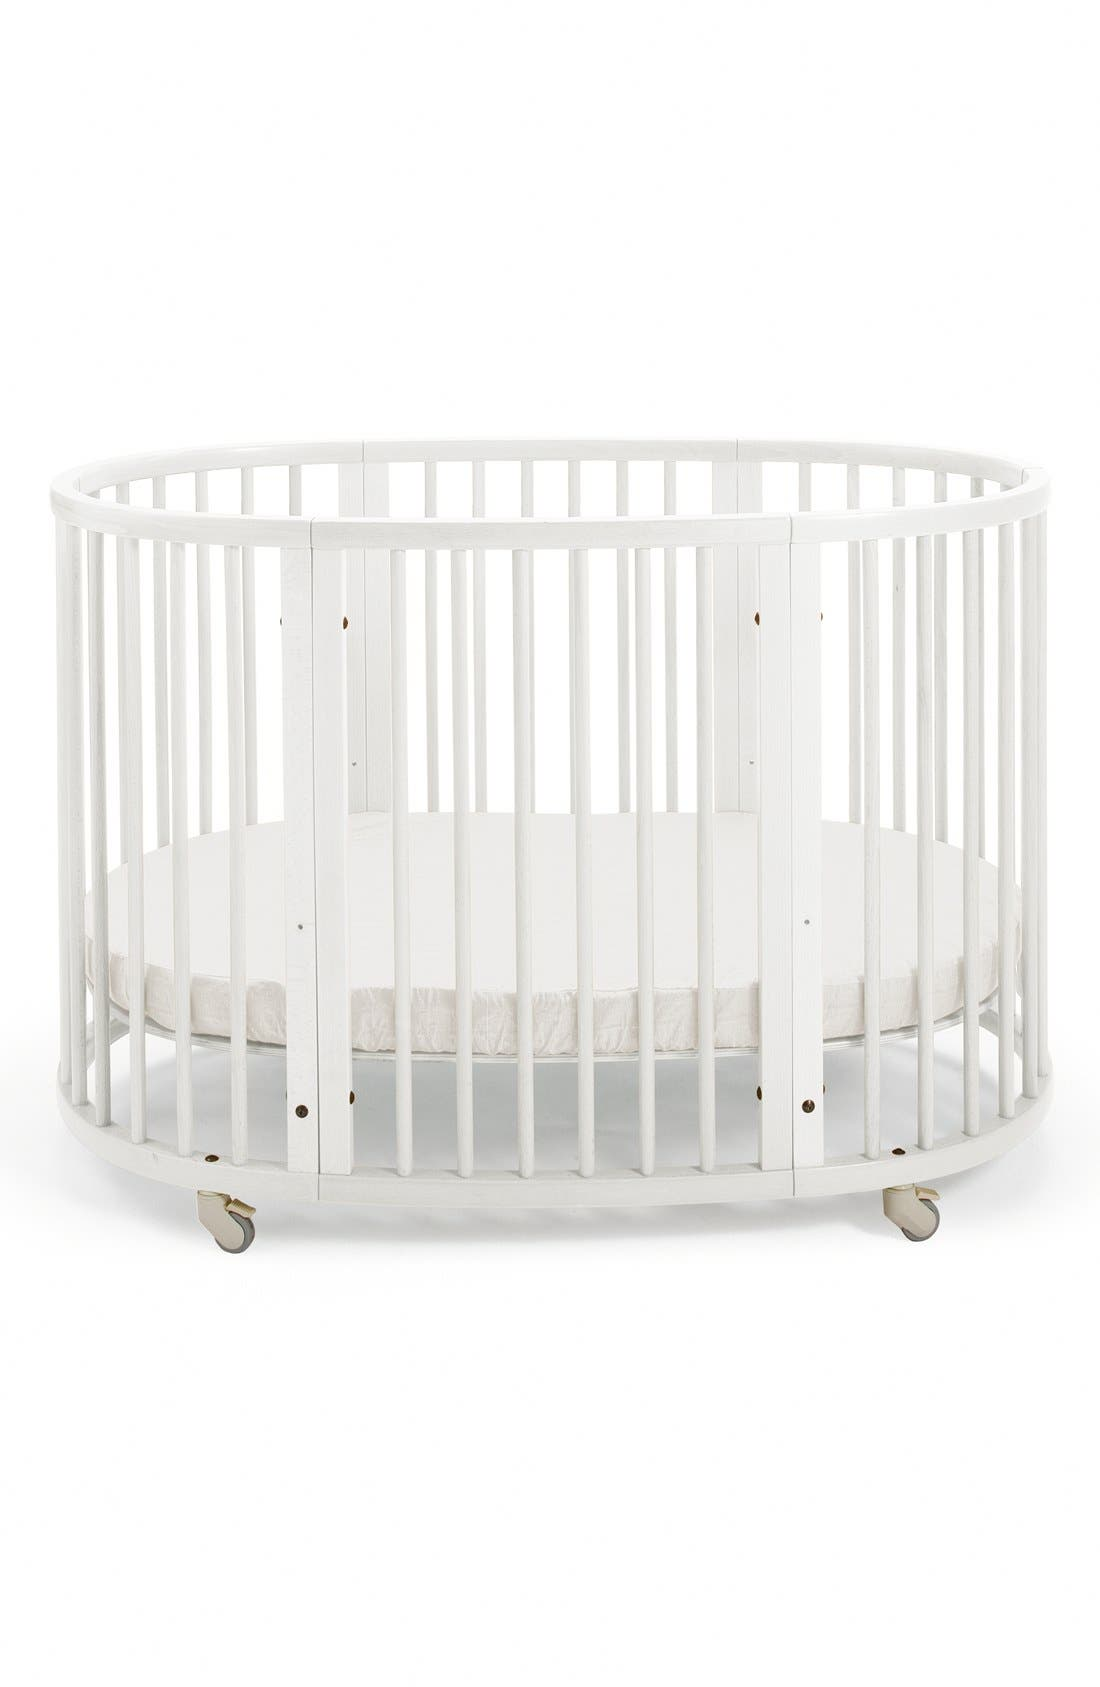 Stokke Convertible Sleepi Crib & Toddler Bed